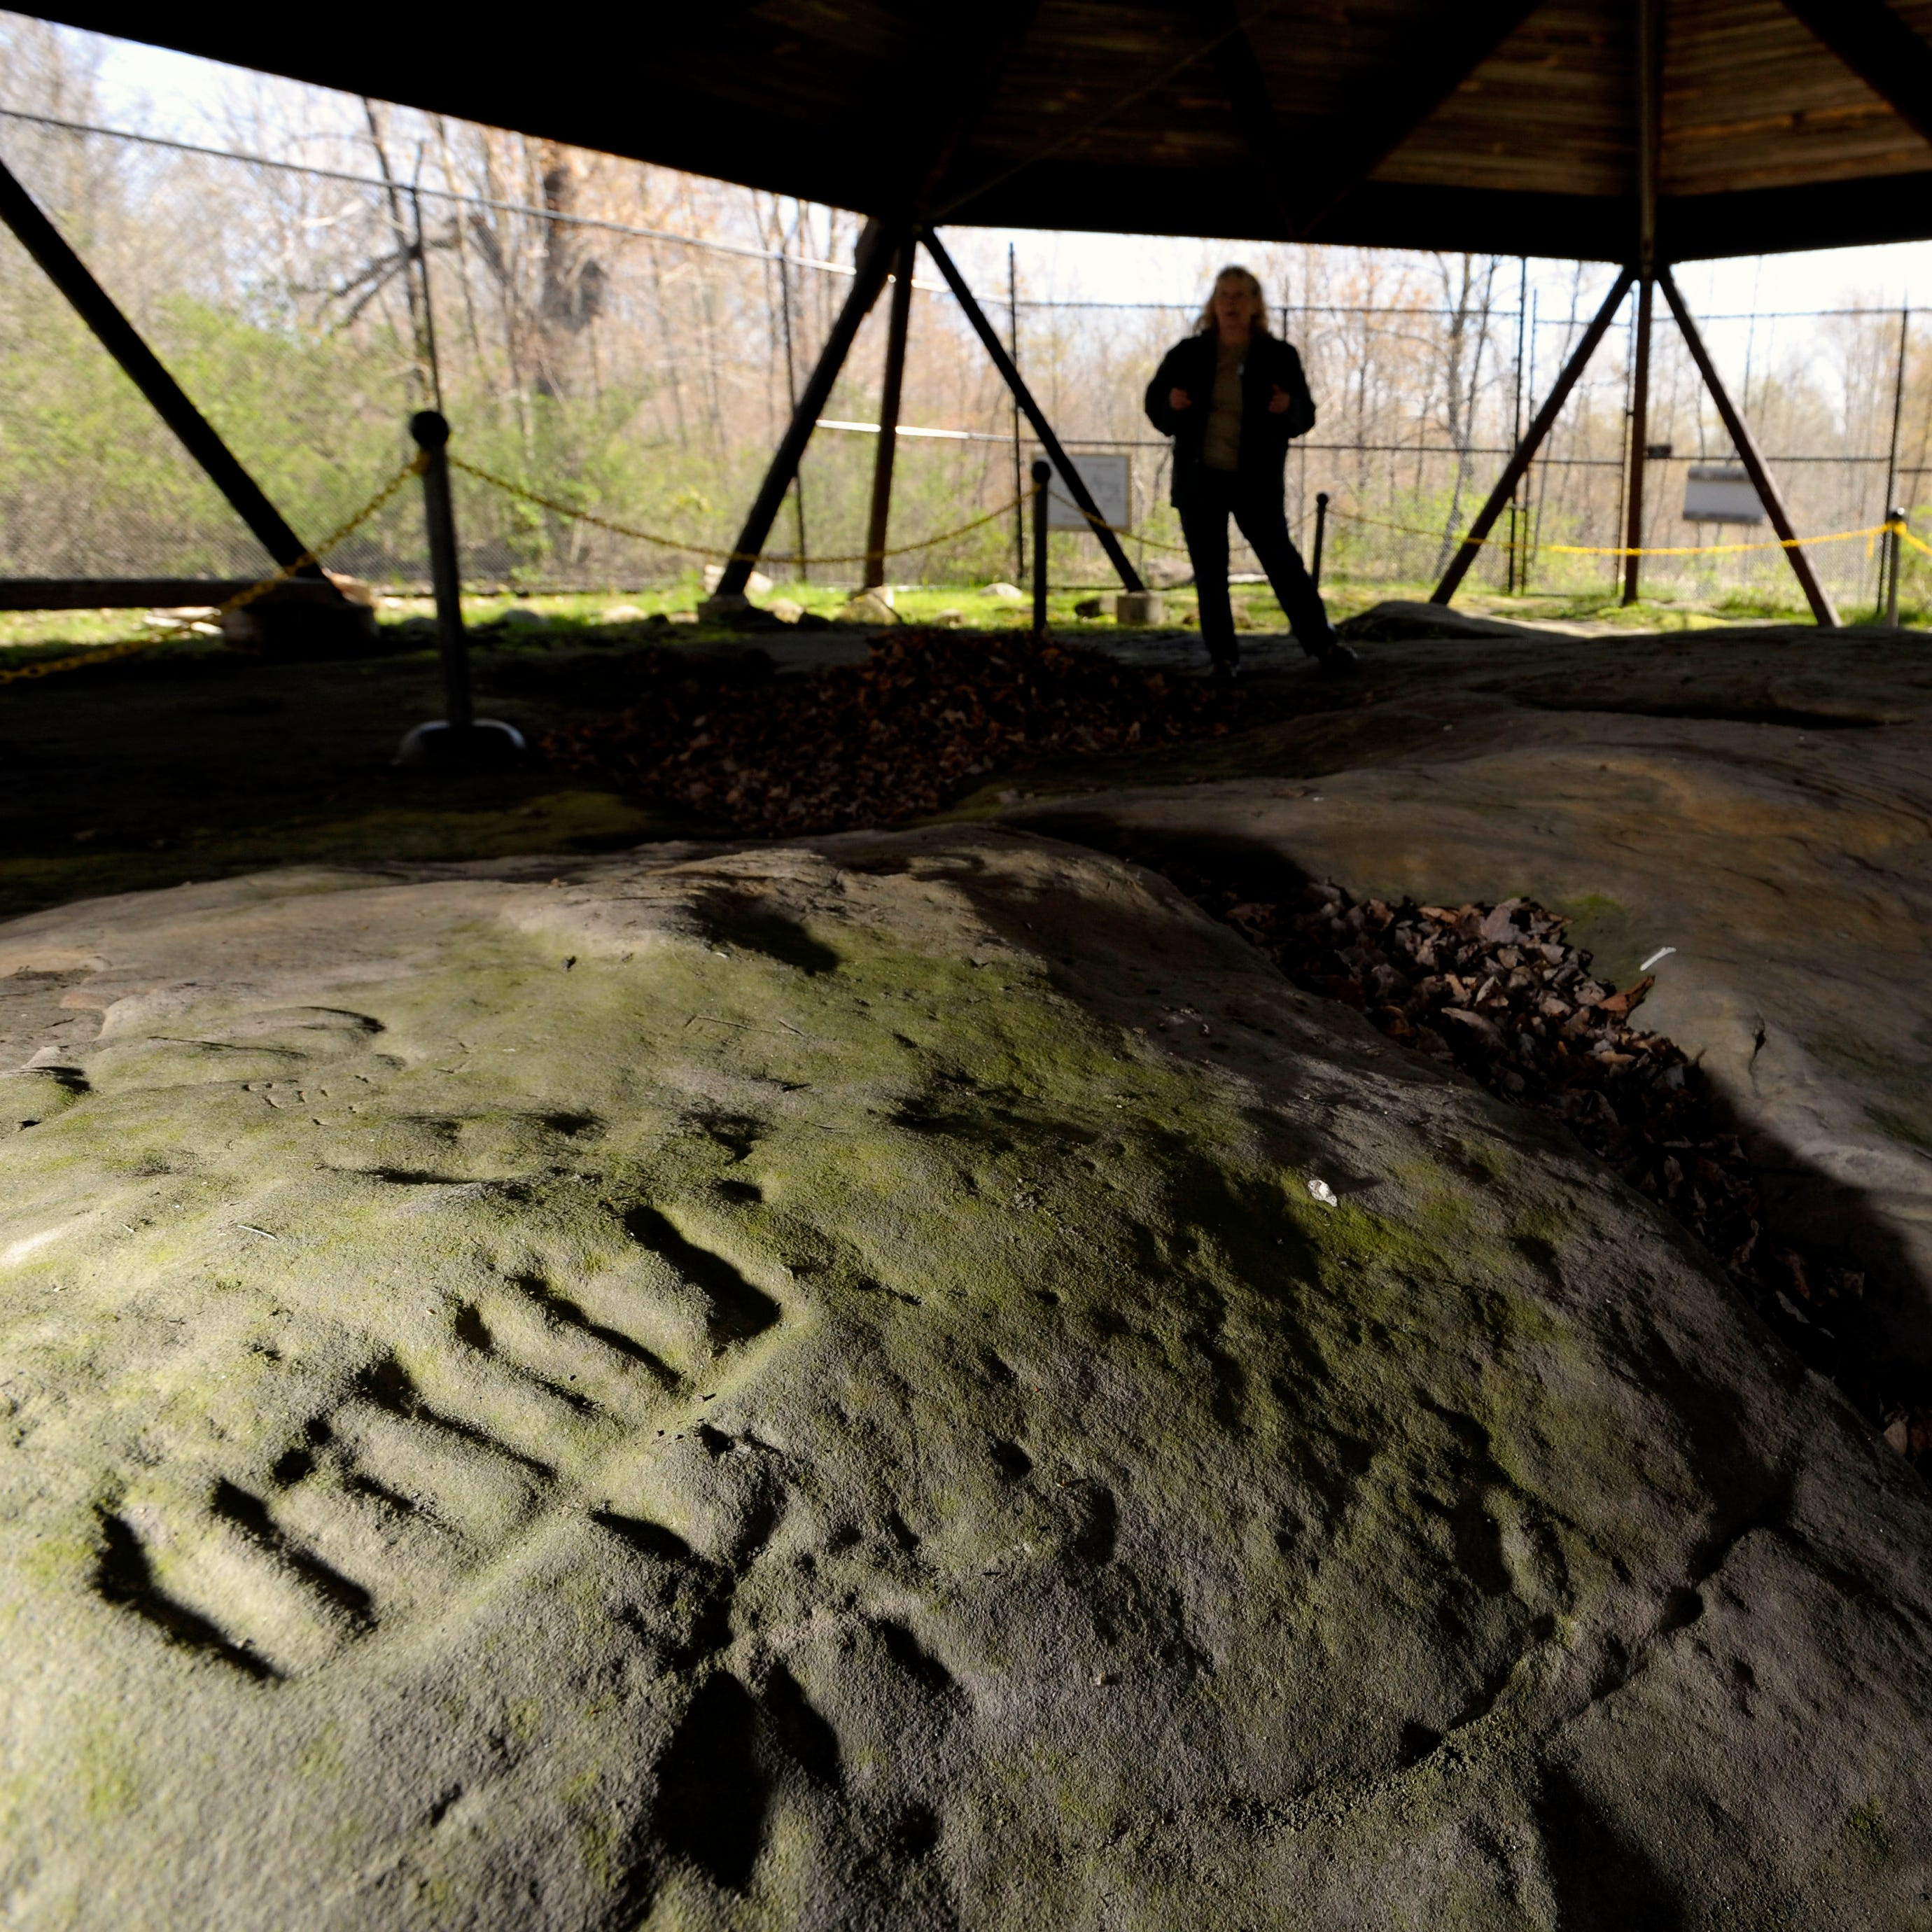 MDOT helps record, preserve ancient tribal rock carvings